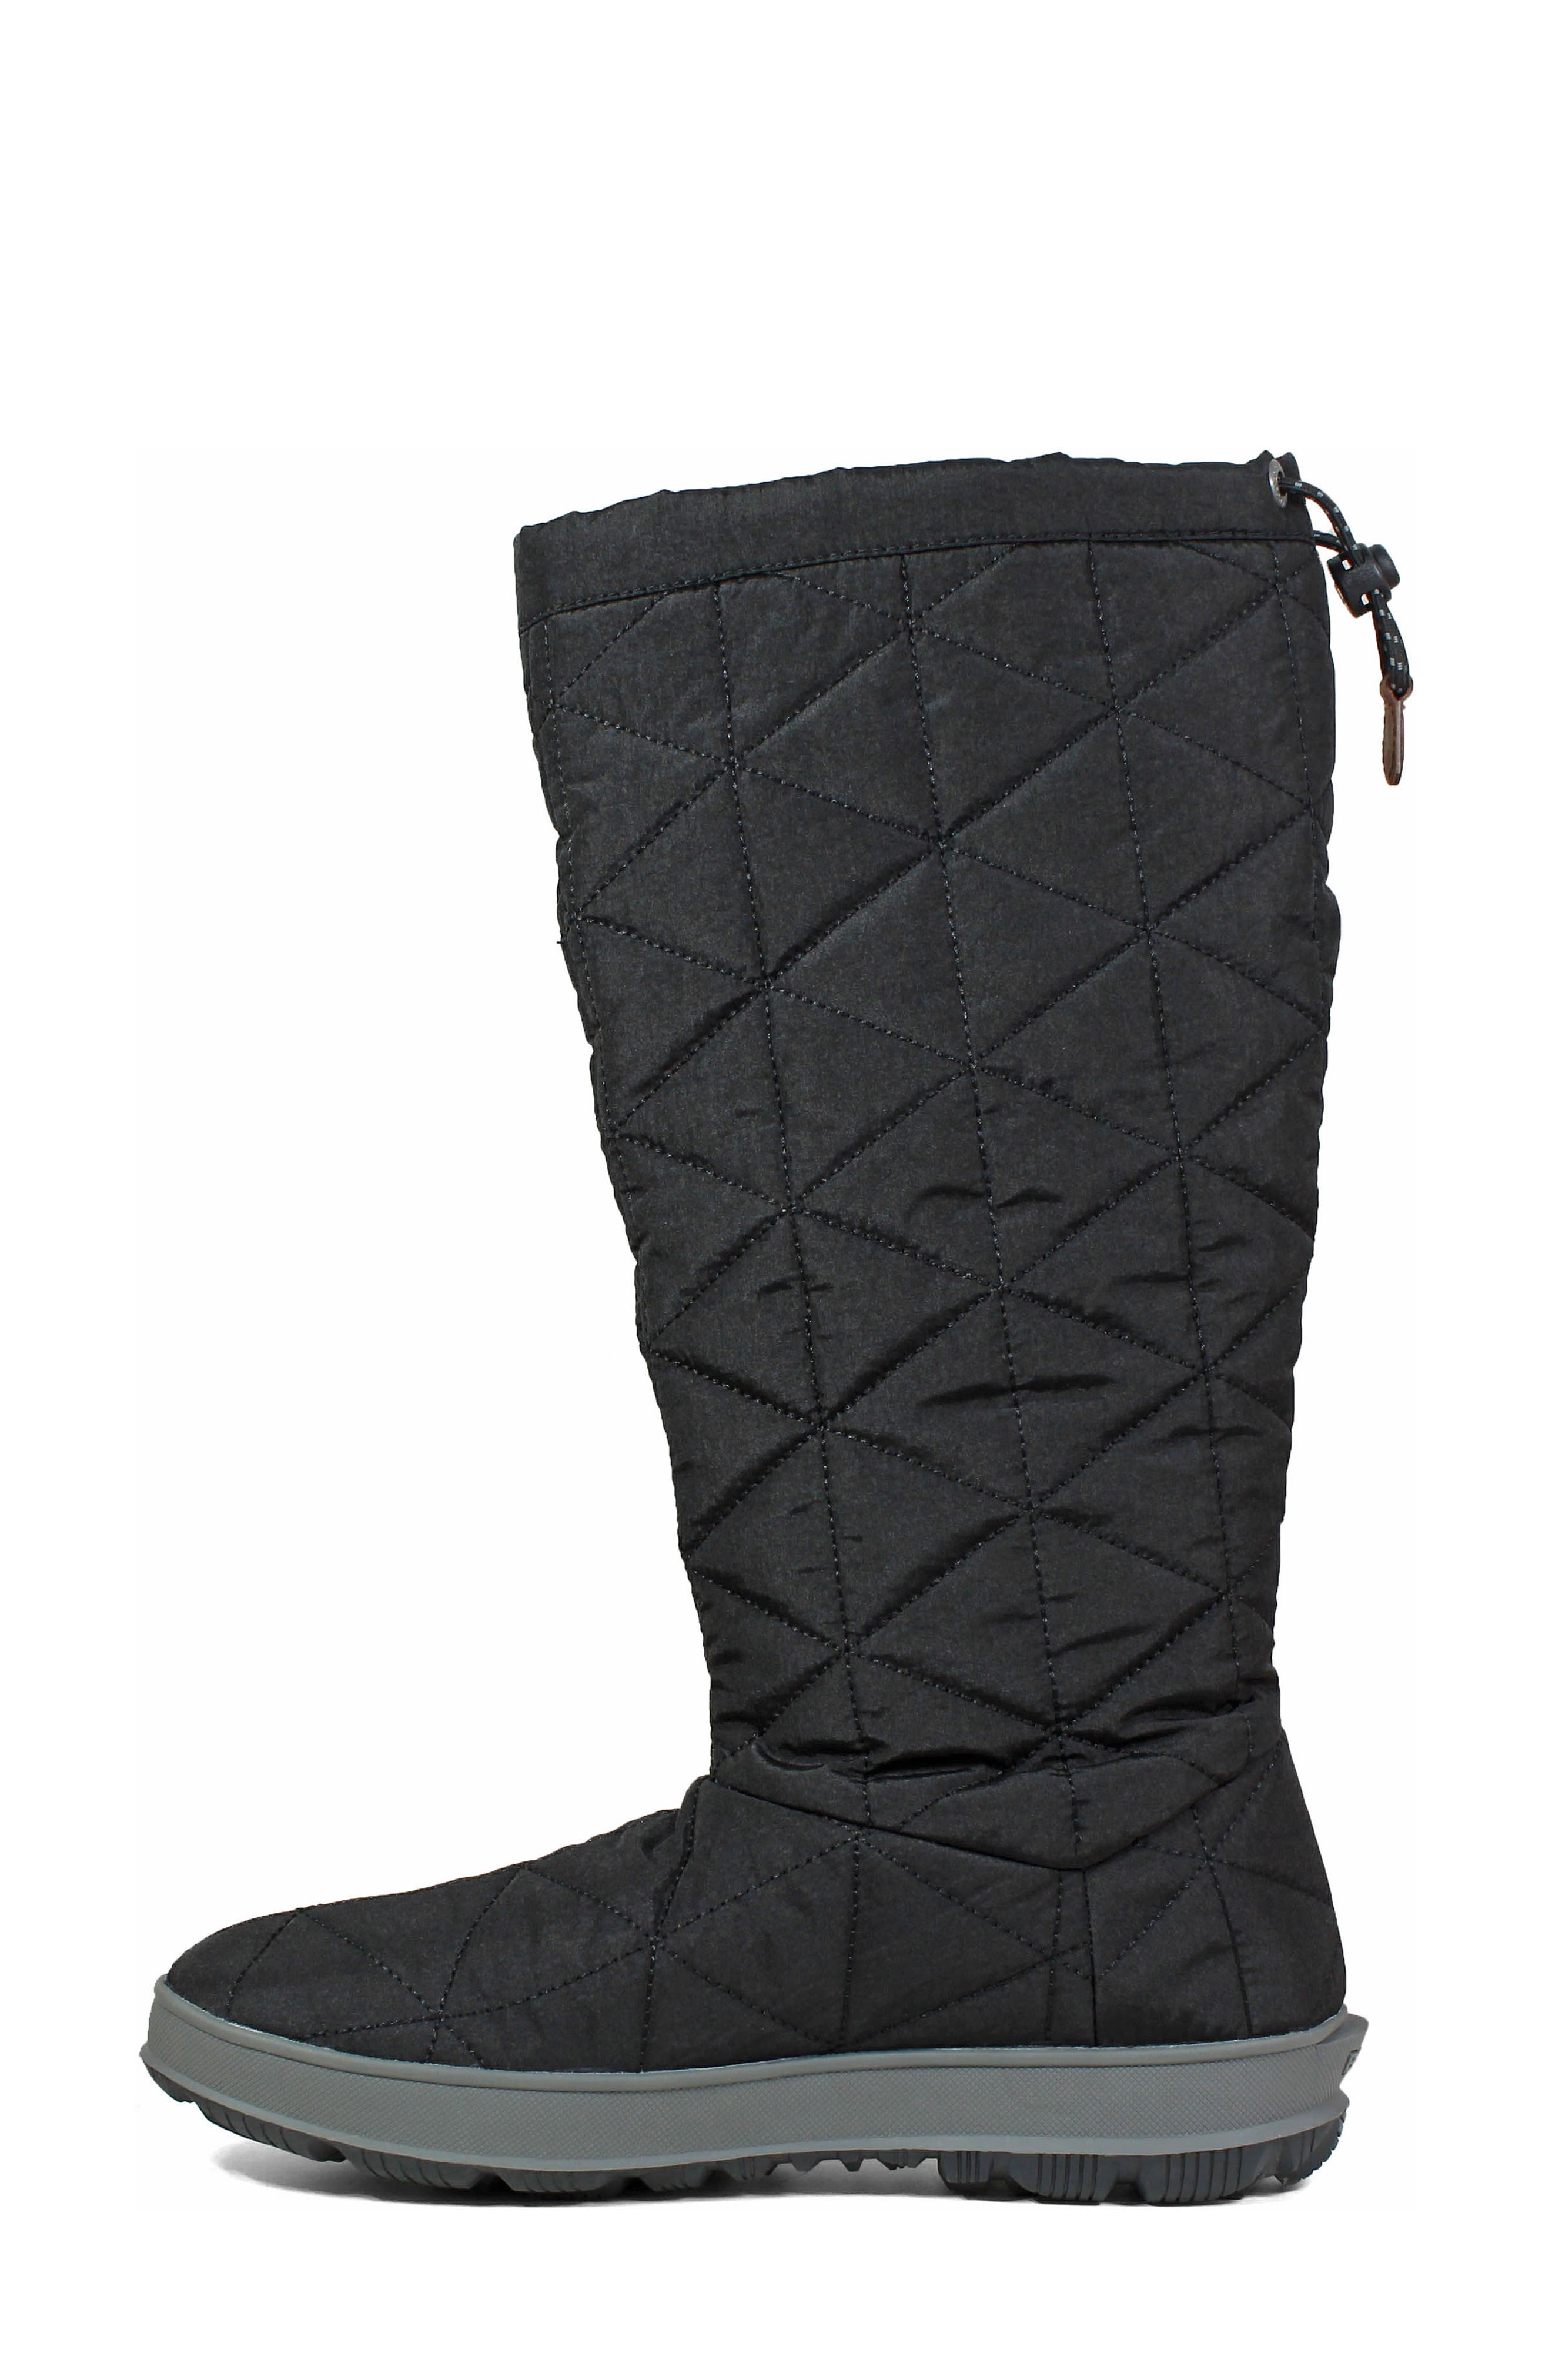 BOGS, Snowday Tall Waterproof Quilted Snow Boot, Alternate thumbnail 7, color, BLACK